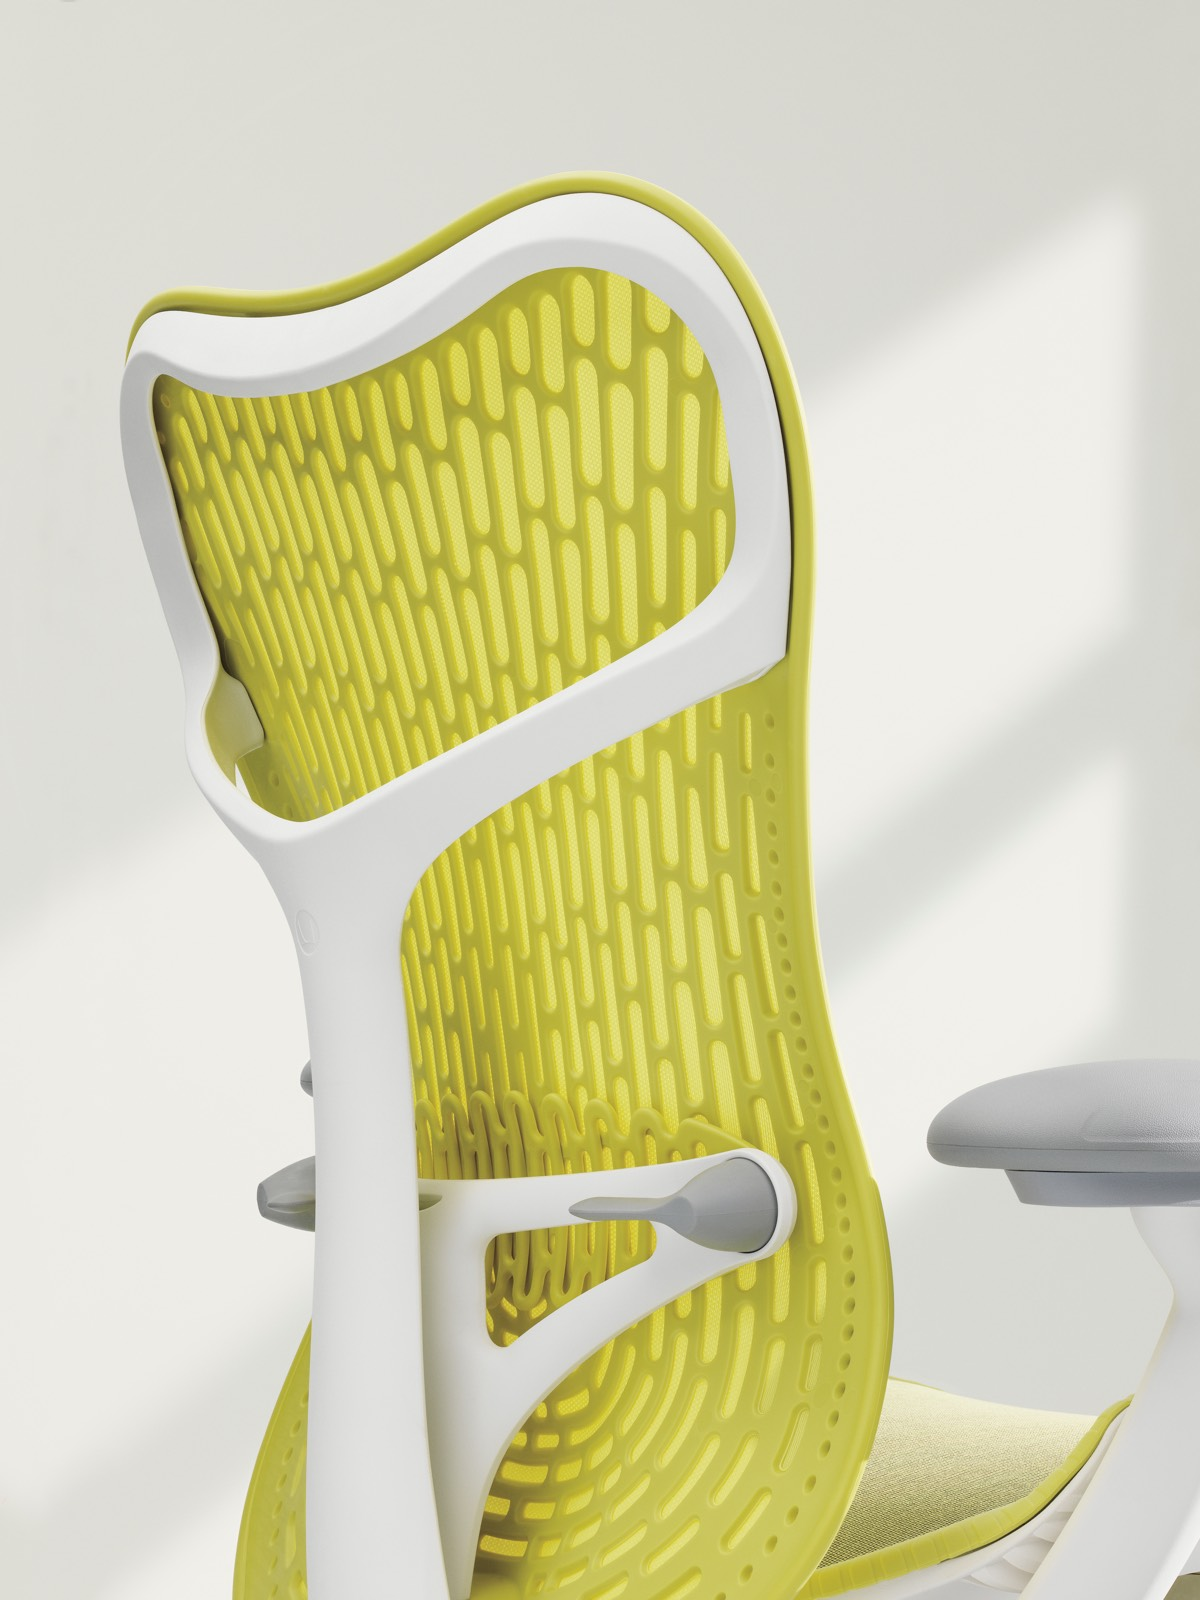 Back view of a yellow Mirra 2 office chair.